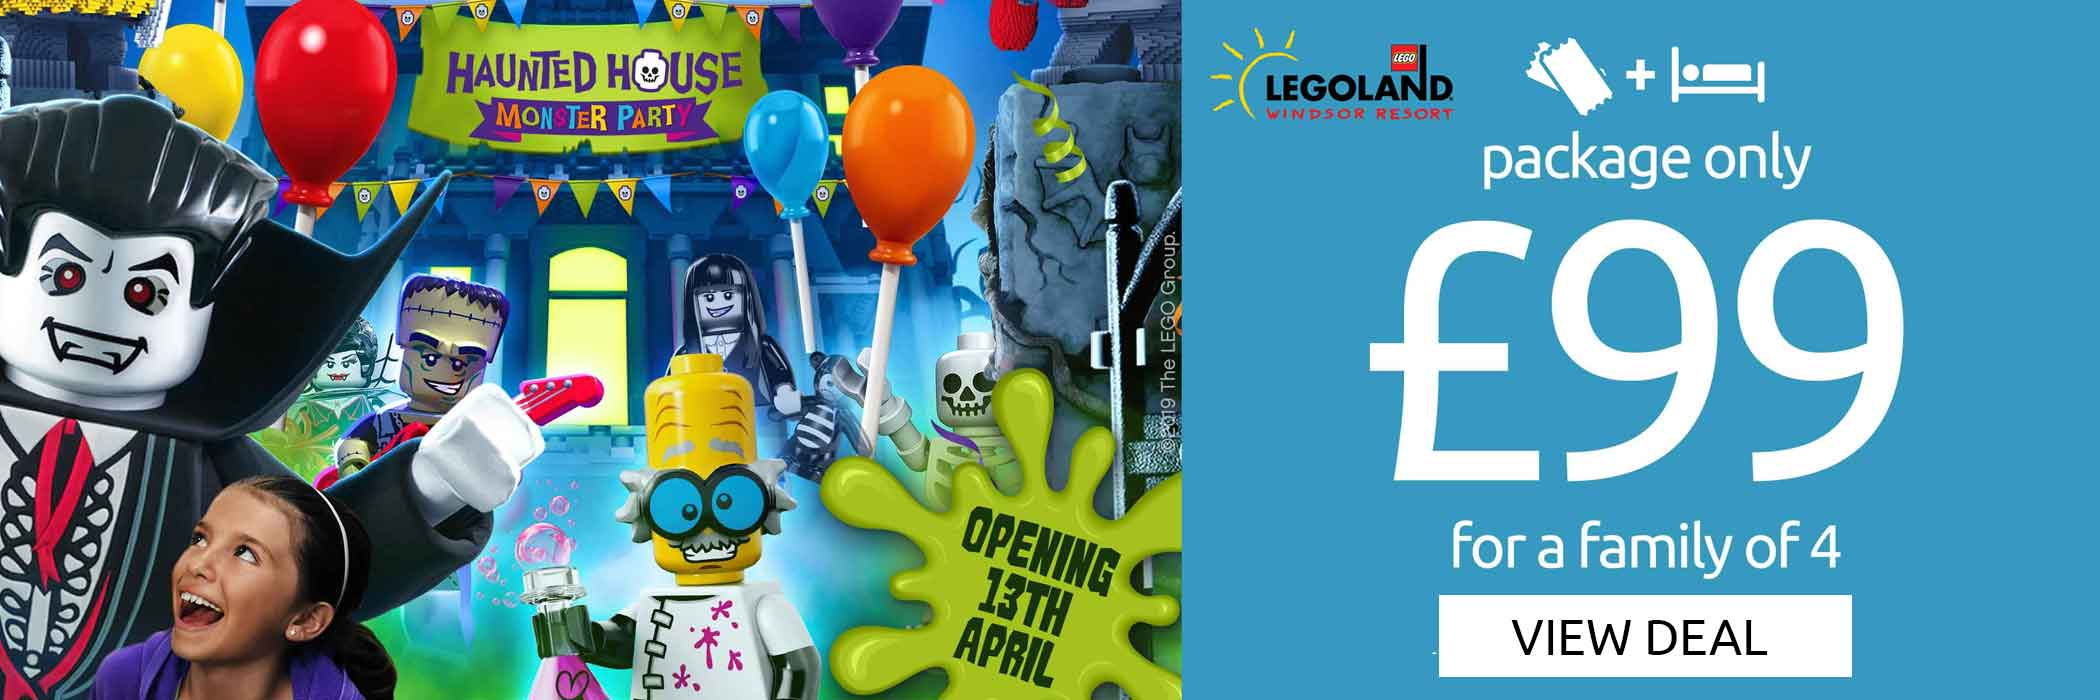 Legoland 99 pound offer